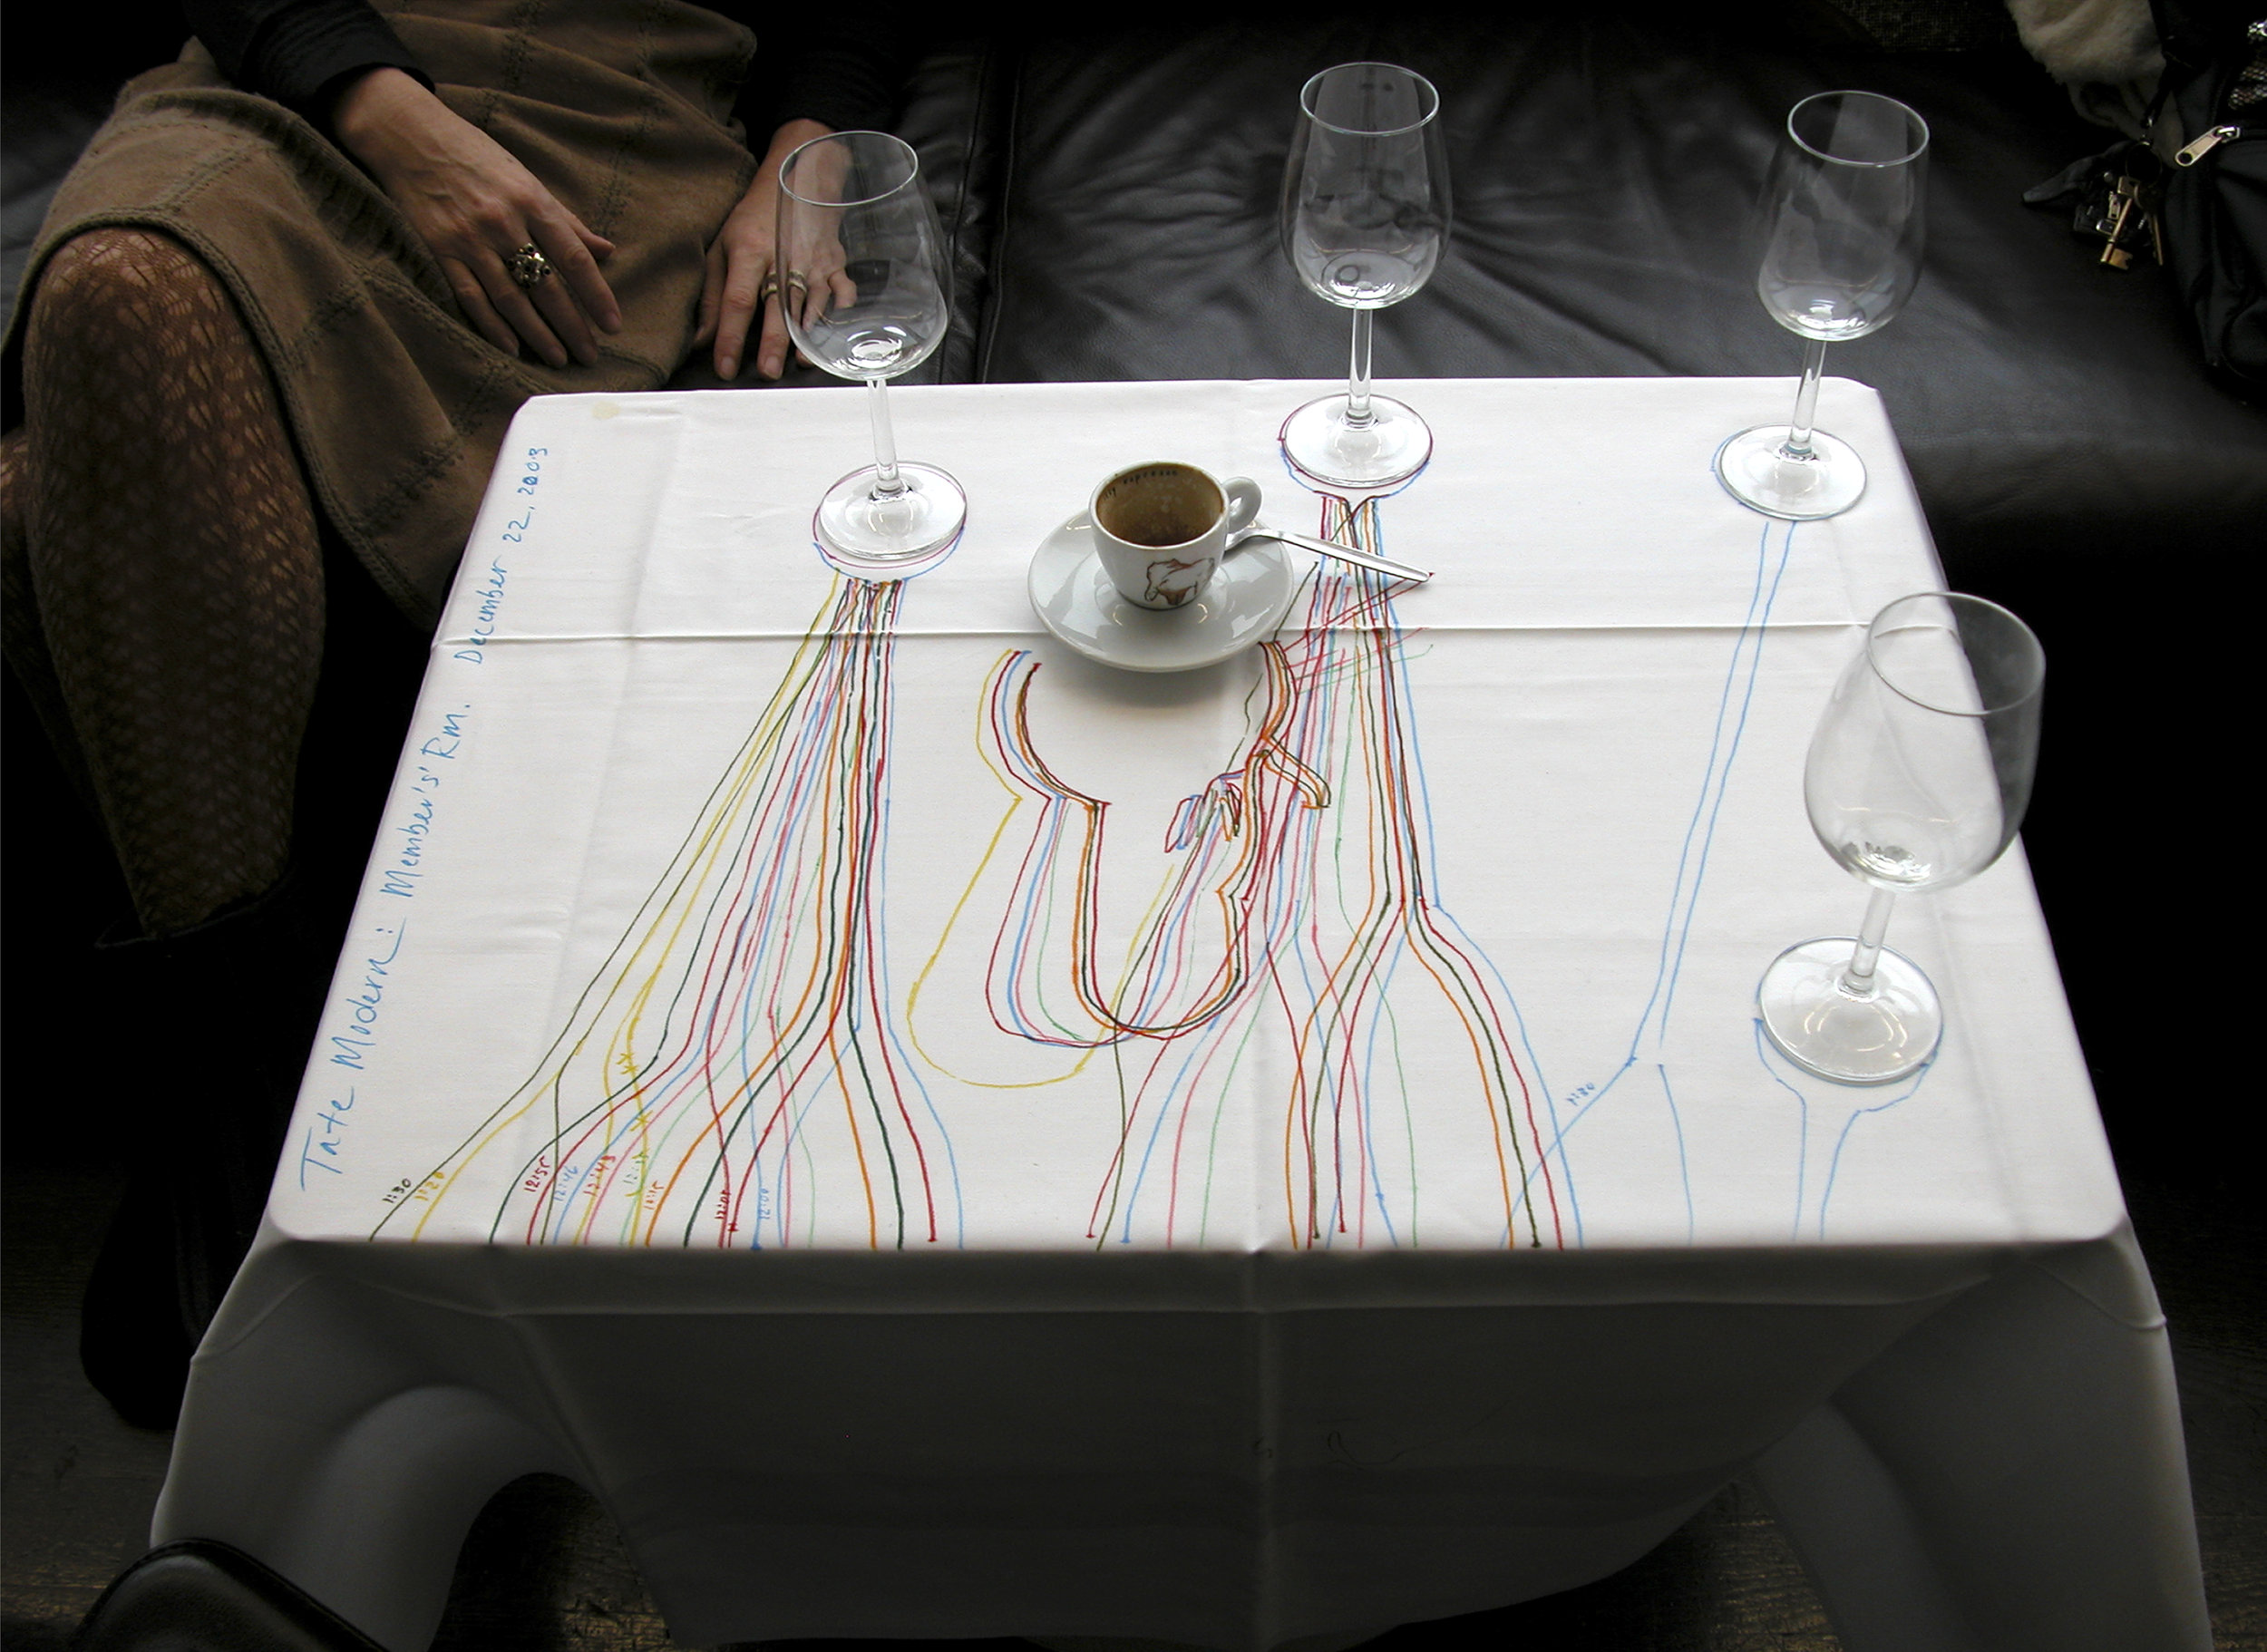 Solstice Lunch with Lee: Tate Modern, London, December 22, 2003